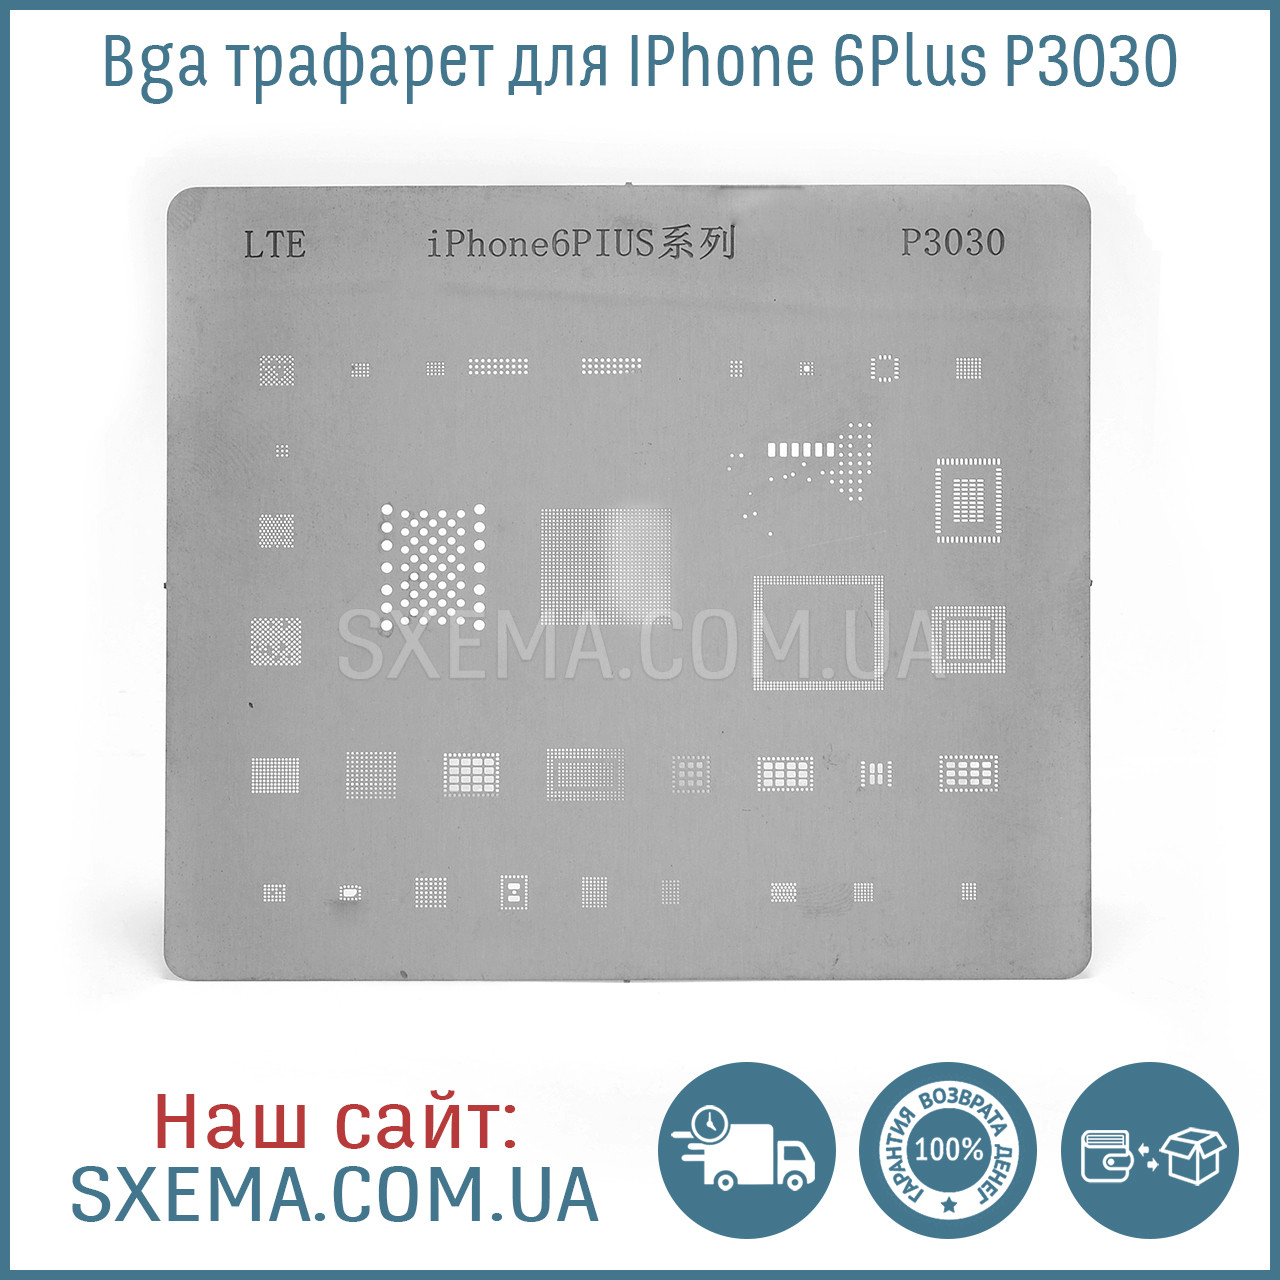 Bga трафарет для IPhone 6Plus P3030